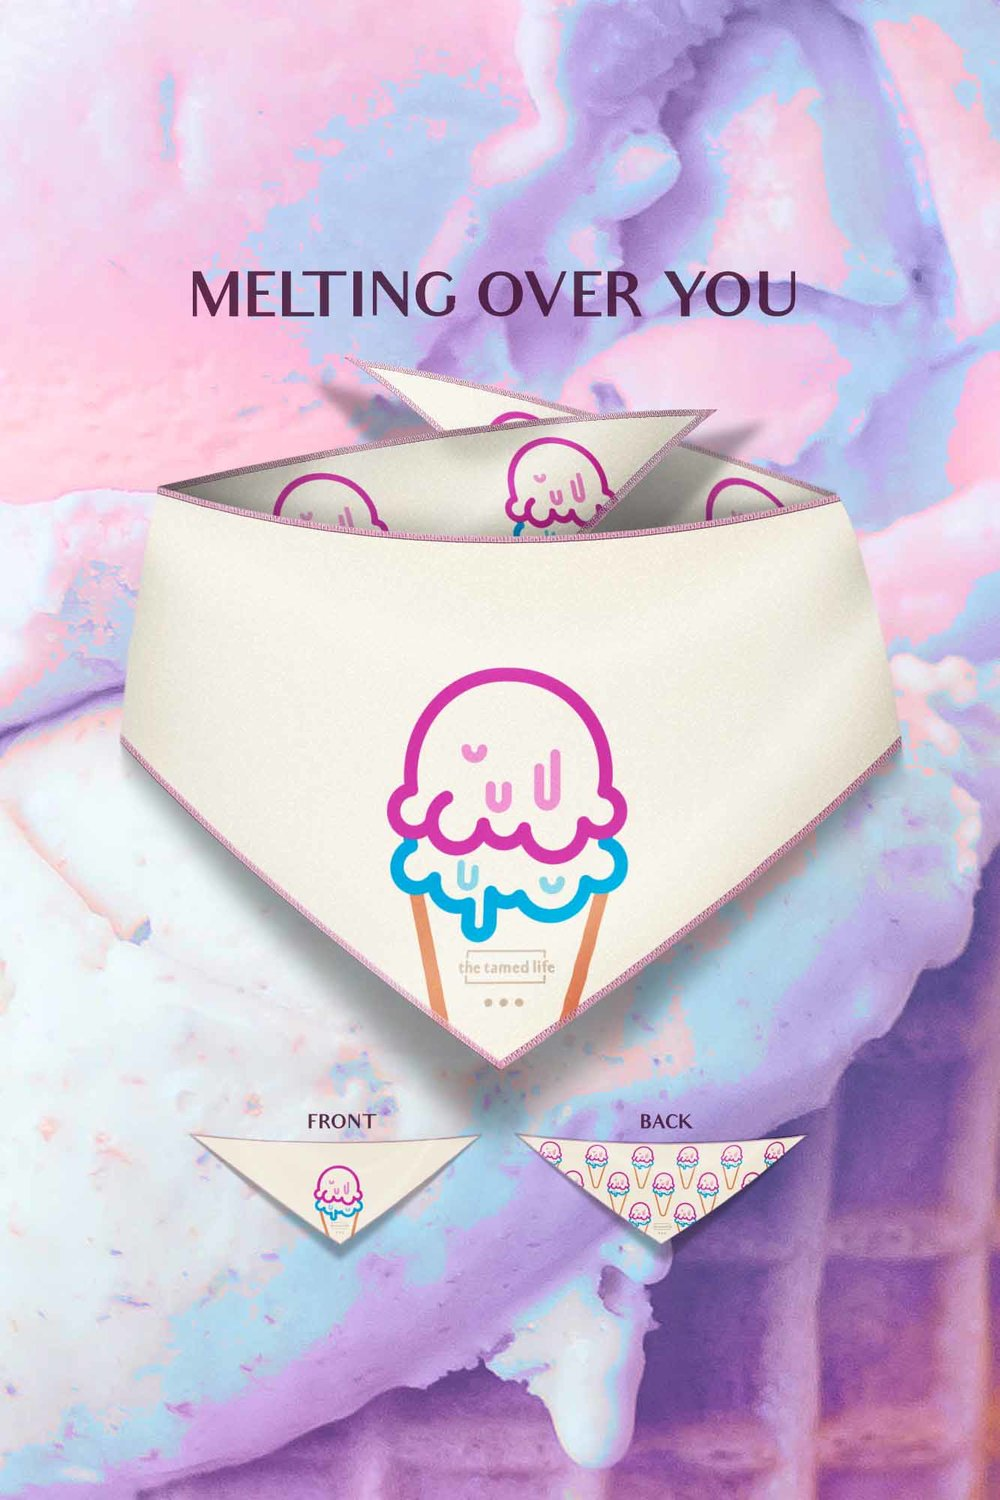 ttl_0005MeltingOverYou_visual.jpg